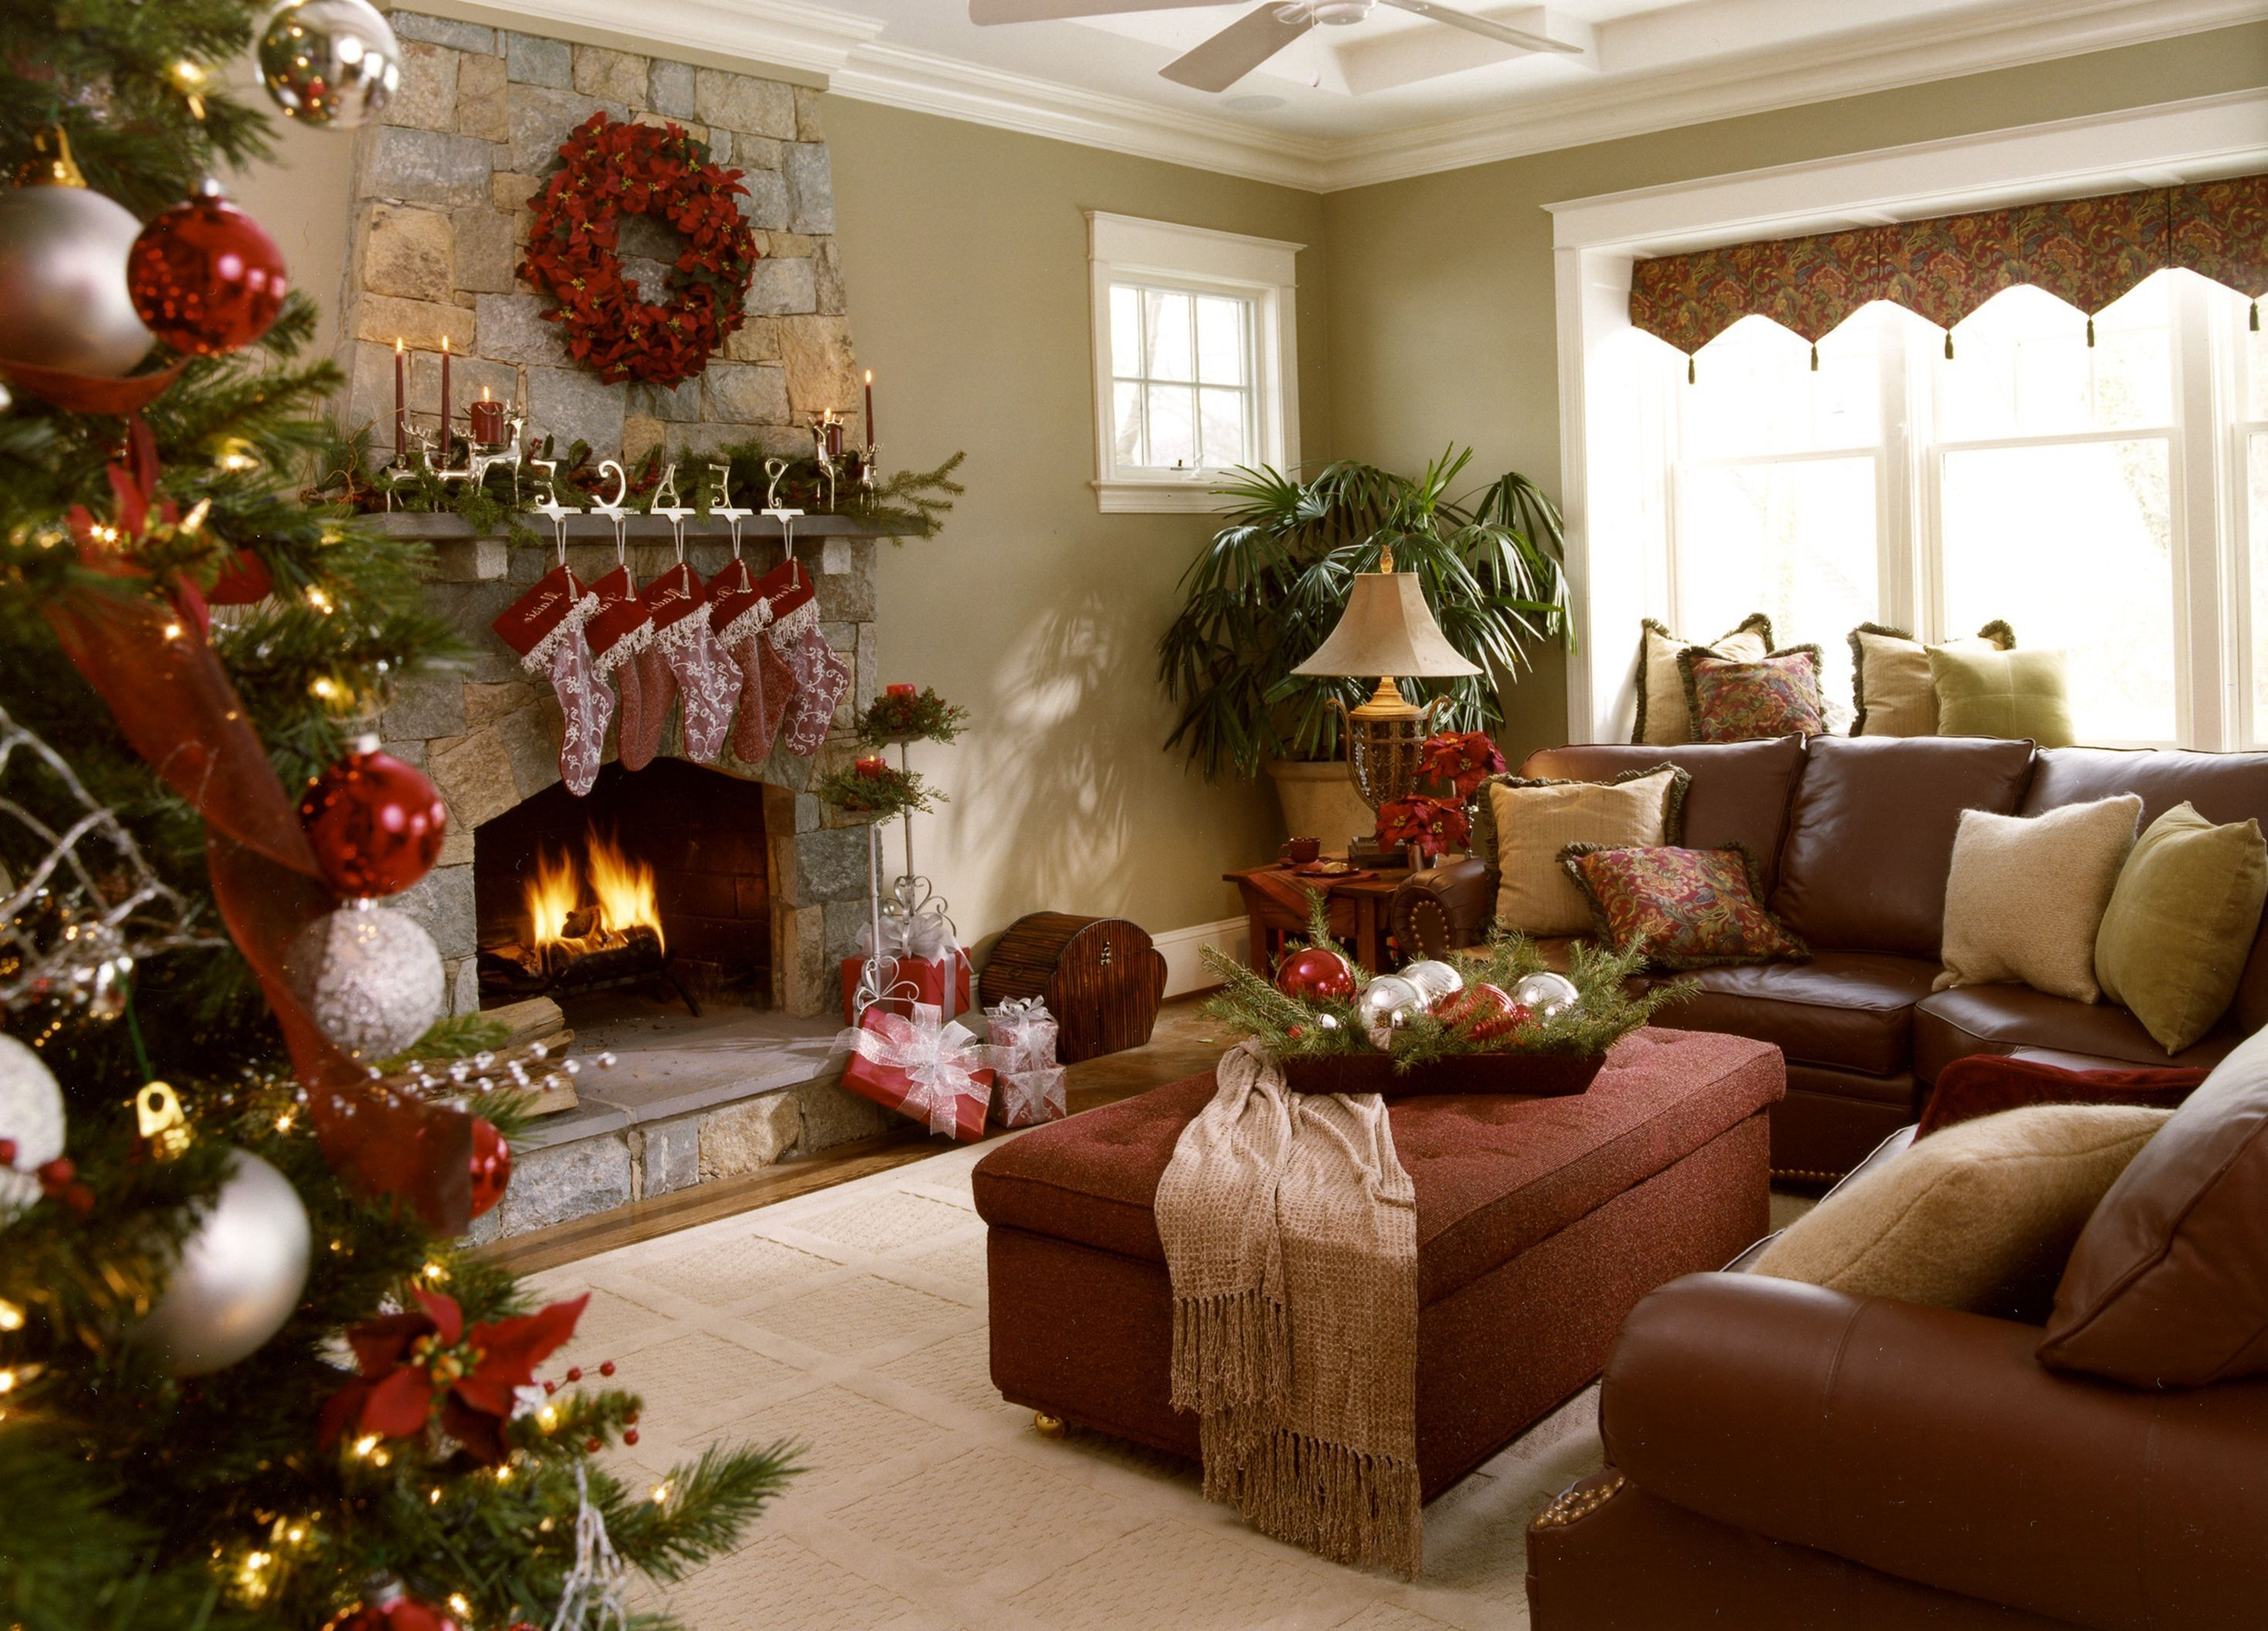 15 Beautiful Christmas Living Room Decorations Ideas For ...